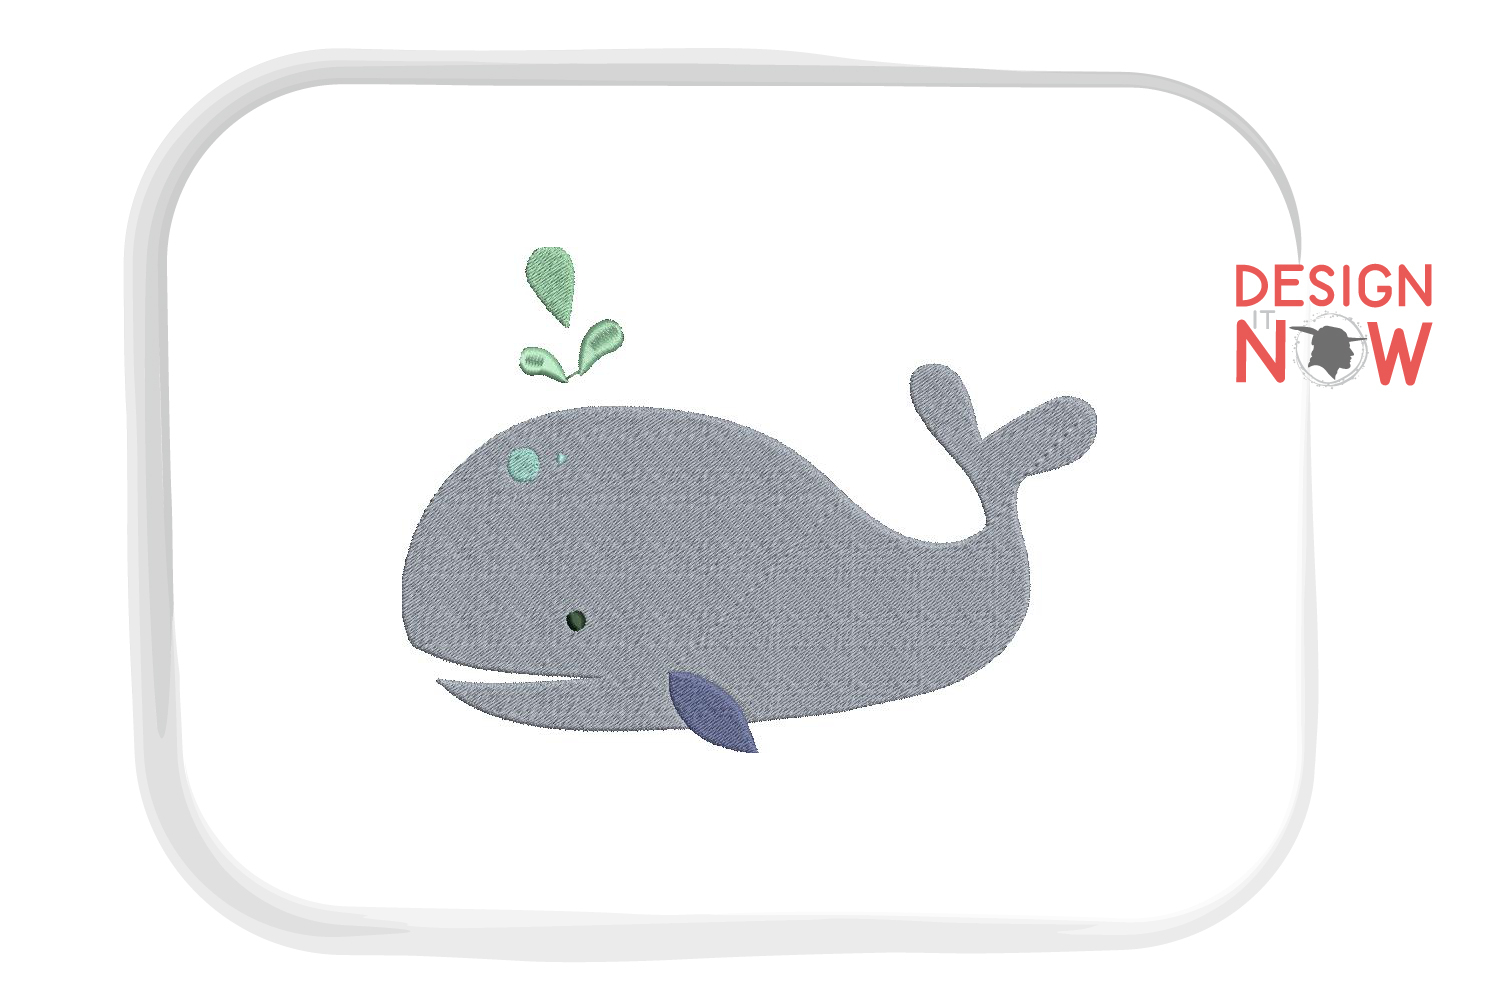 Whale Embroidery Design, Fish Embroidery Design, Sea example image 4